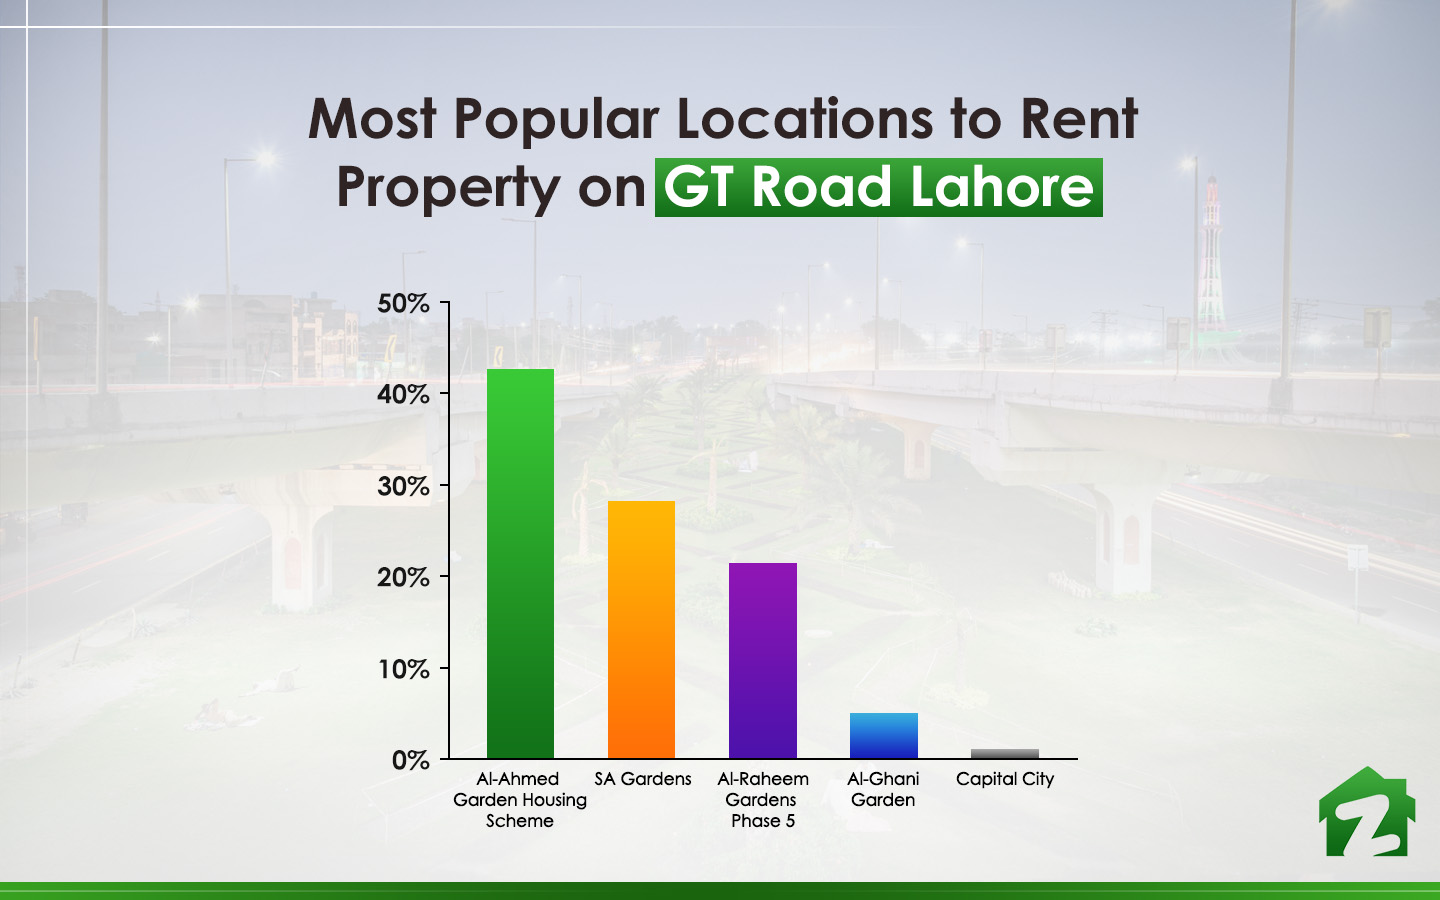 Al Ahmed Garden Housing Scheme is searched the most online for renting property on GT Road